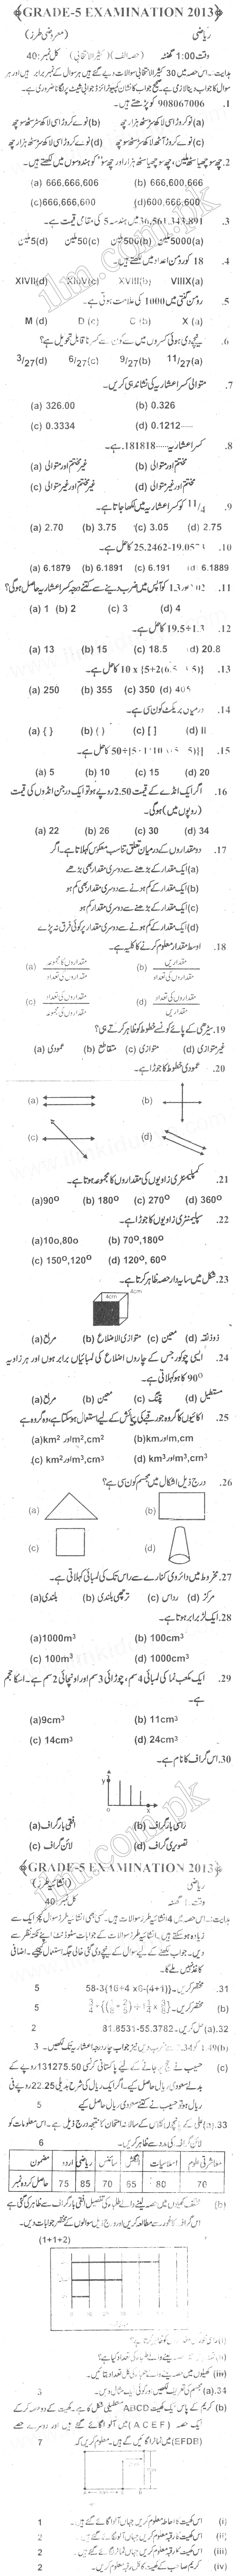 PEC 5th Class Maths Past Paper 2014, 2013 Download Questions